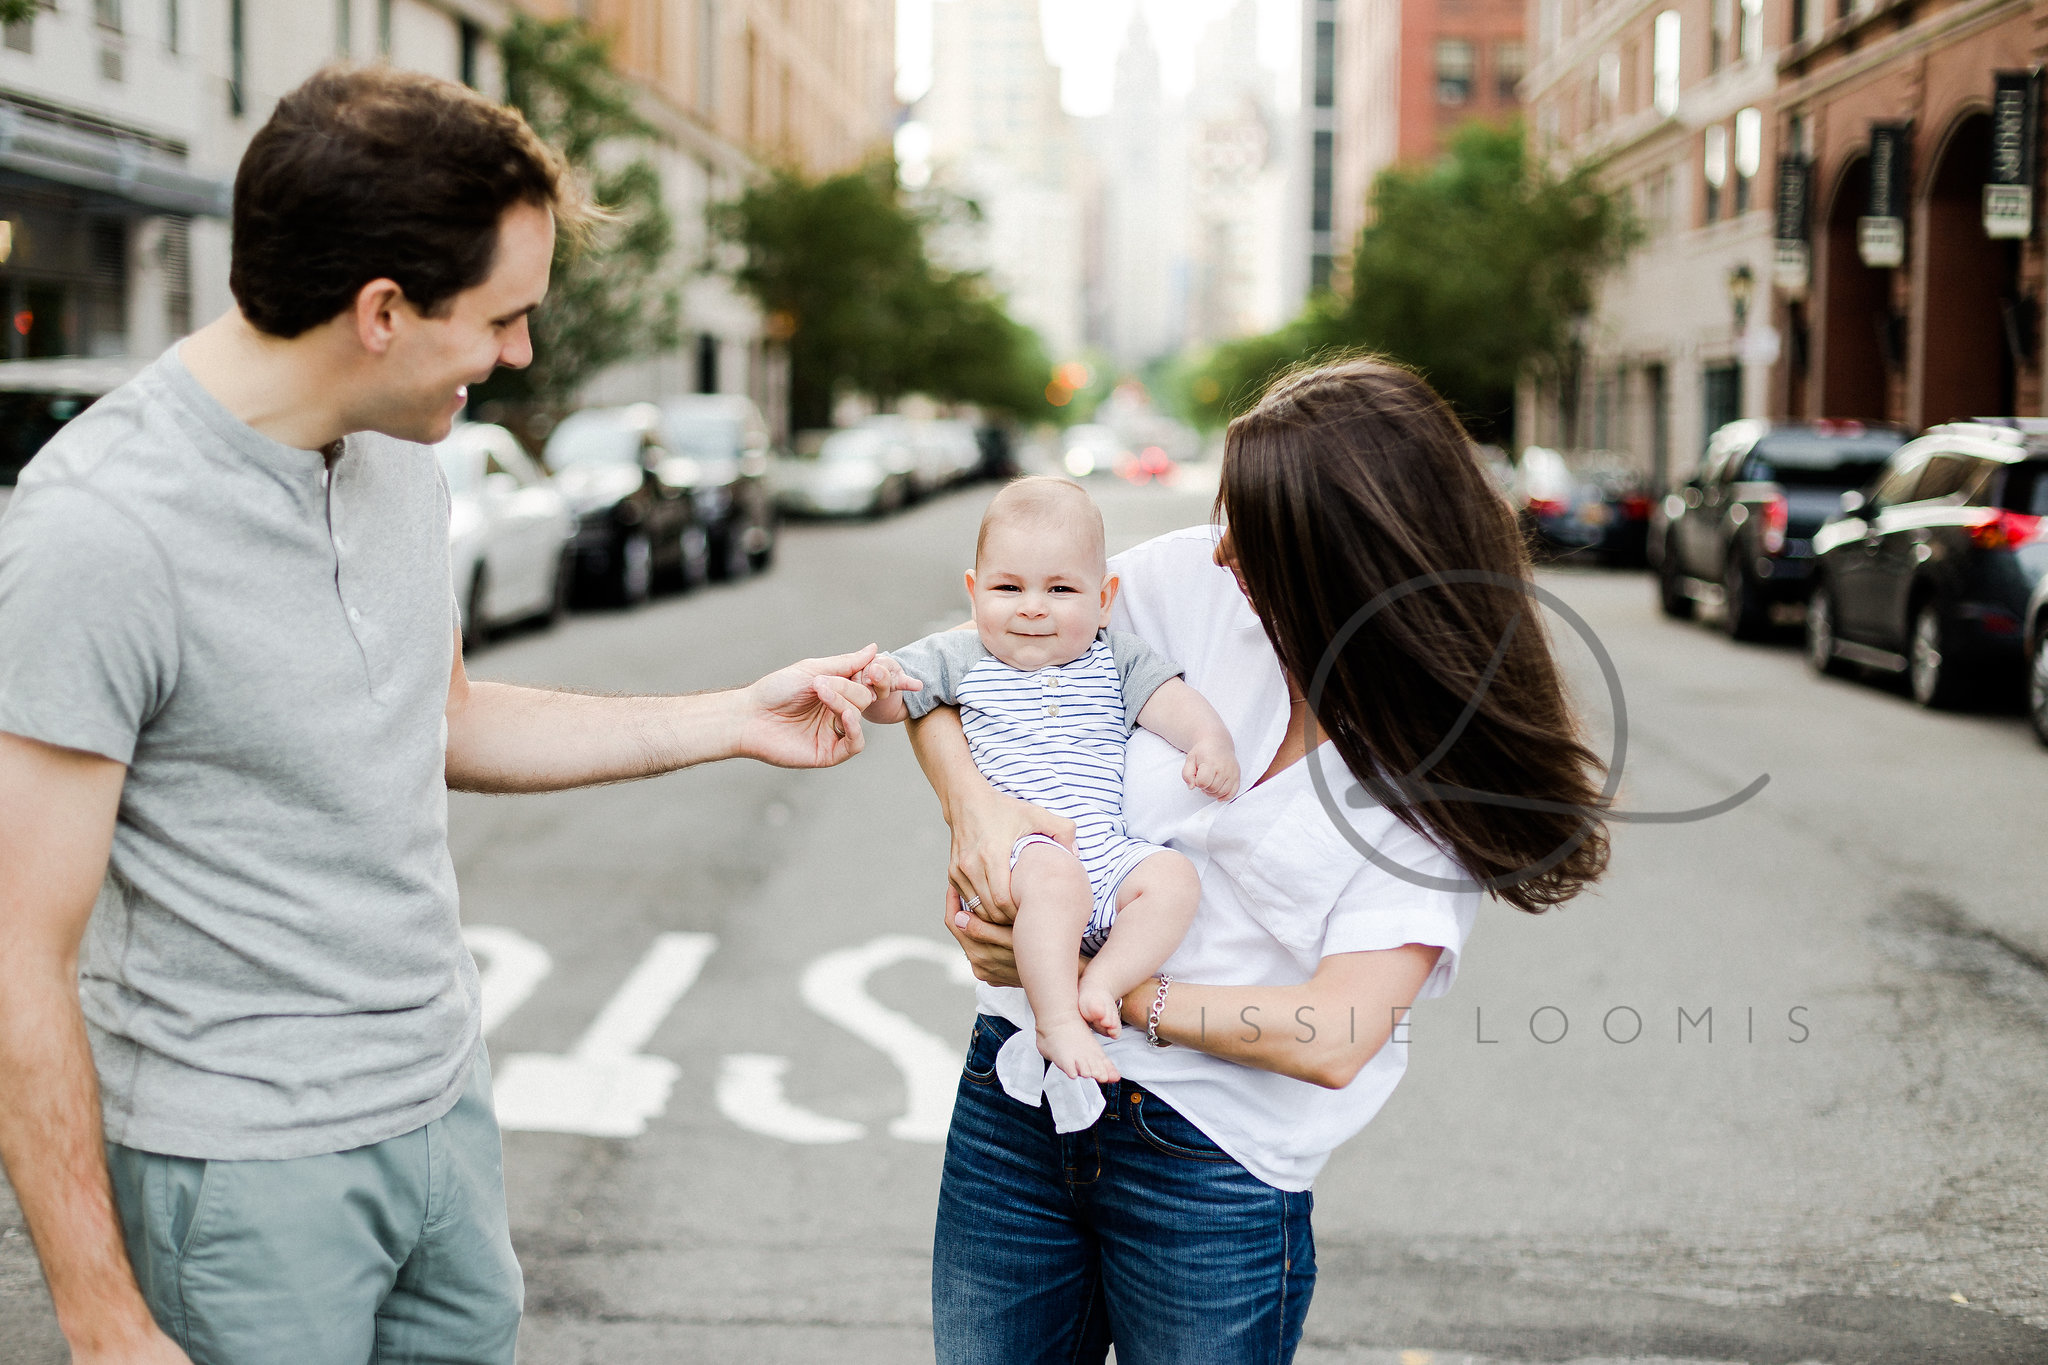 lissie-loomis-photo-newyorkcity-family-photography-baby-photographer-brooklyn7.JPG